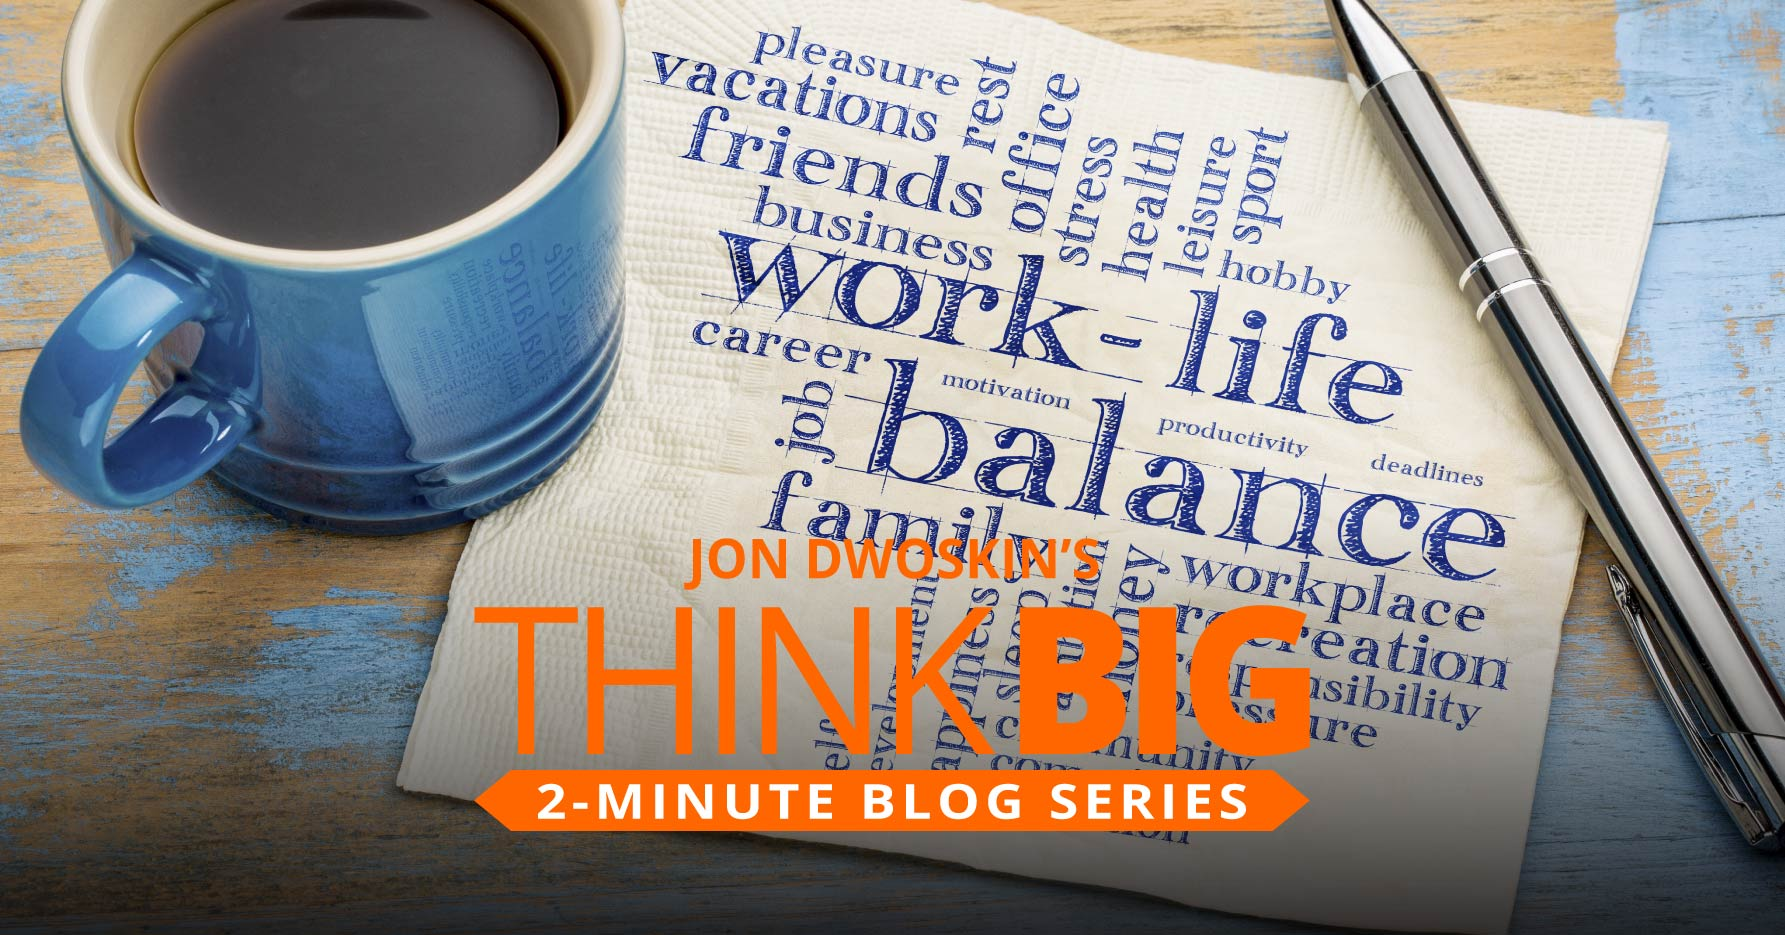 THINK Big 2-Minute Blog: Jon's Favorite Books on Maintaining Work/Life Balance